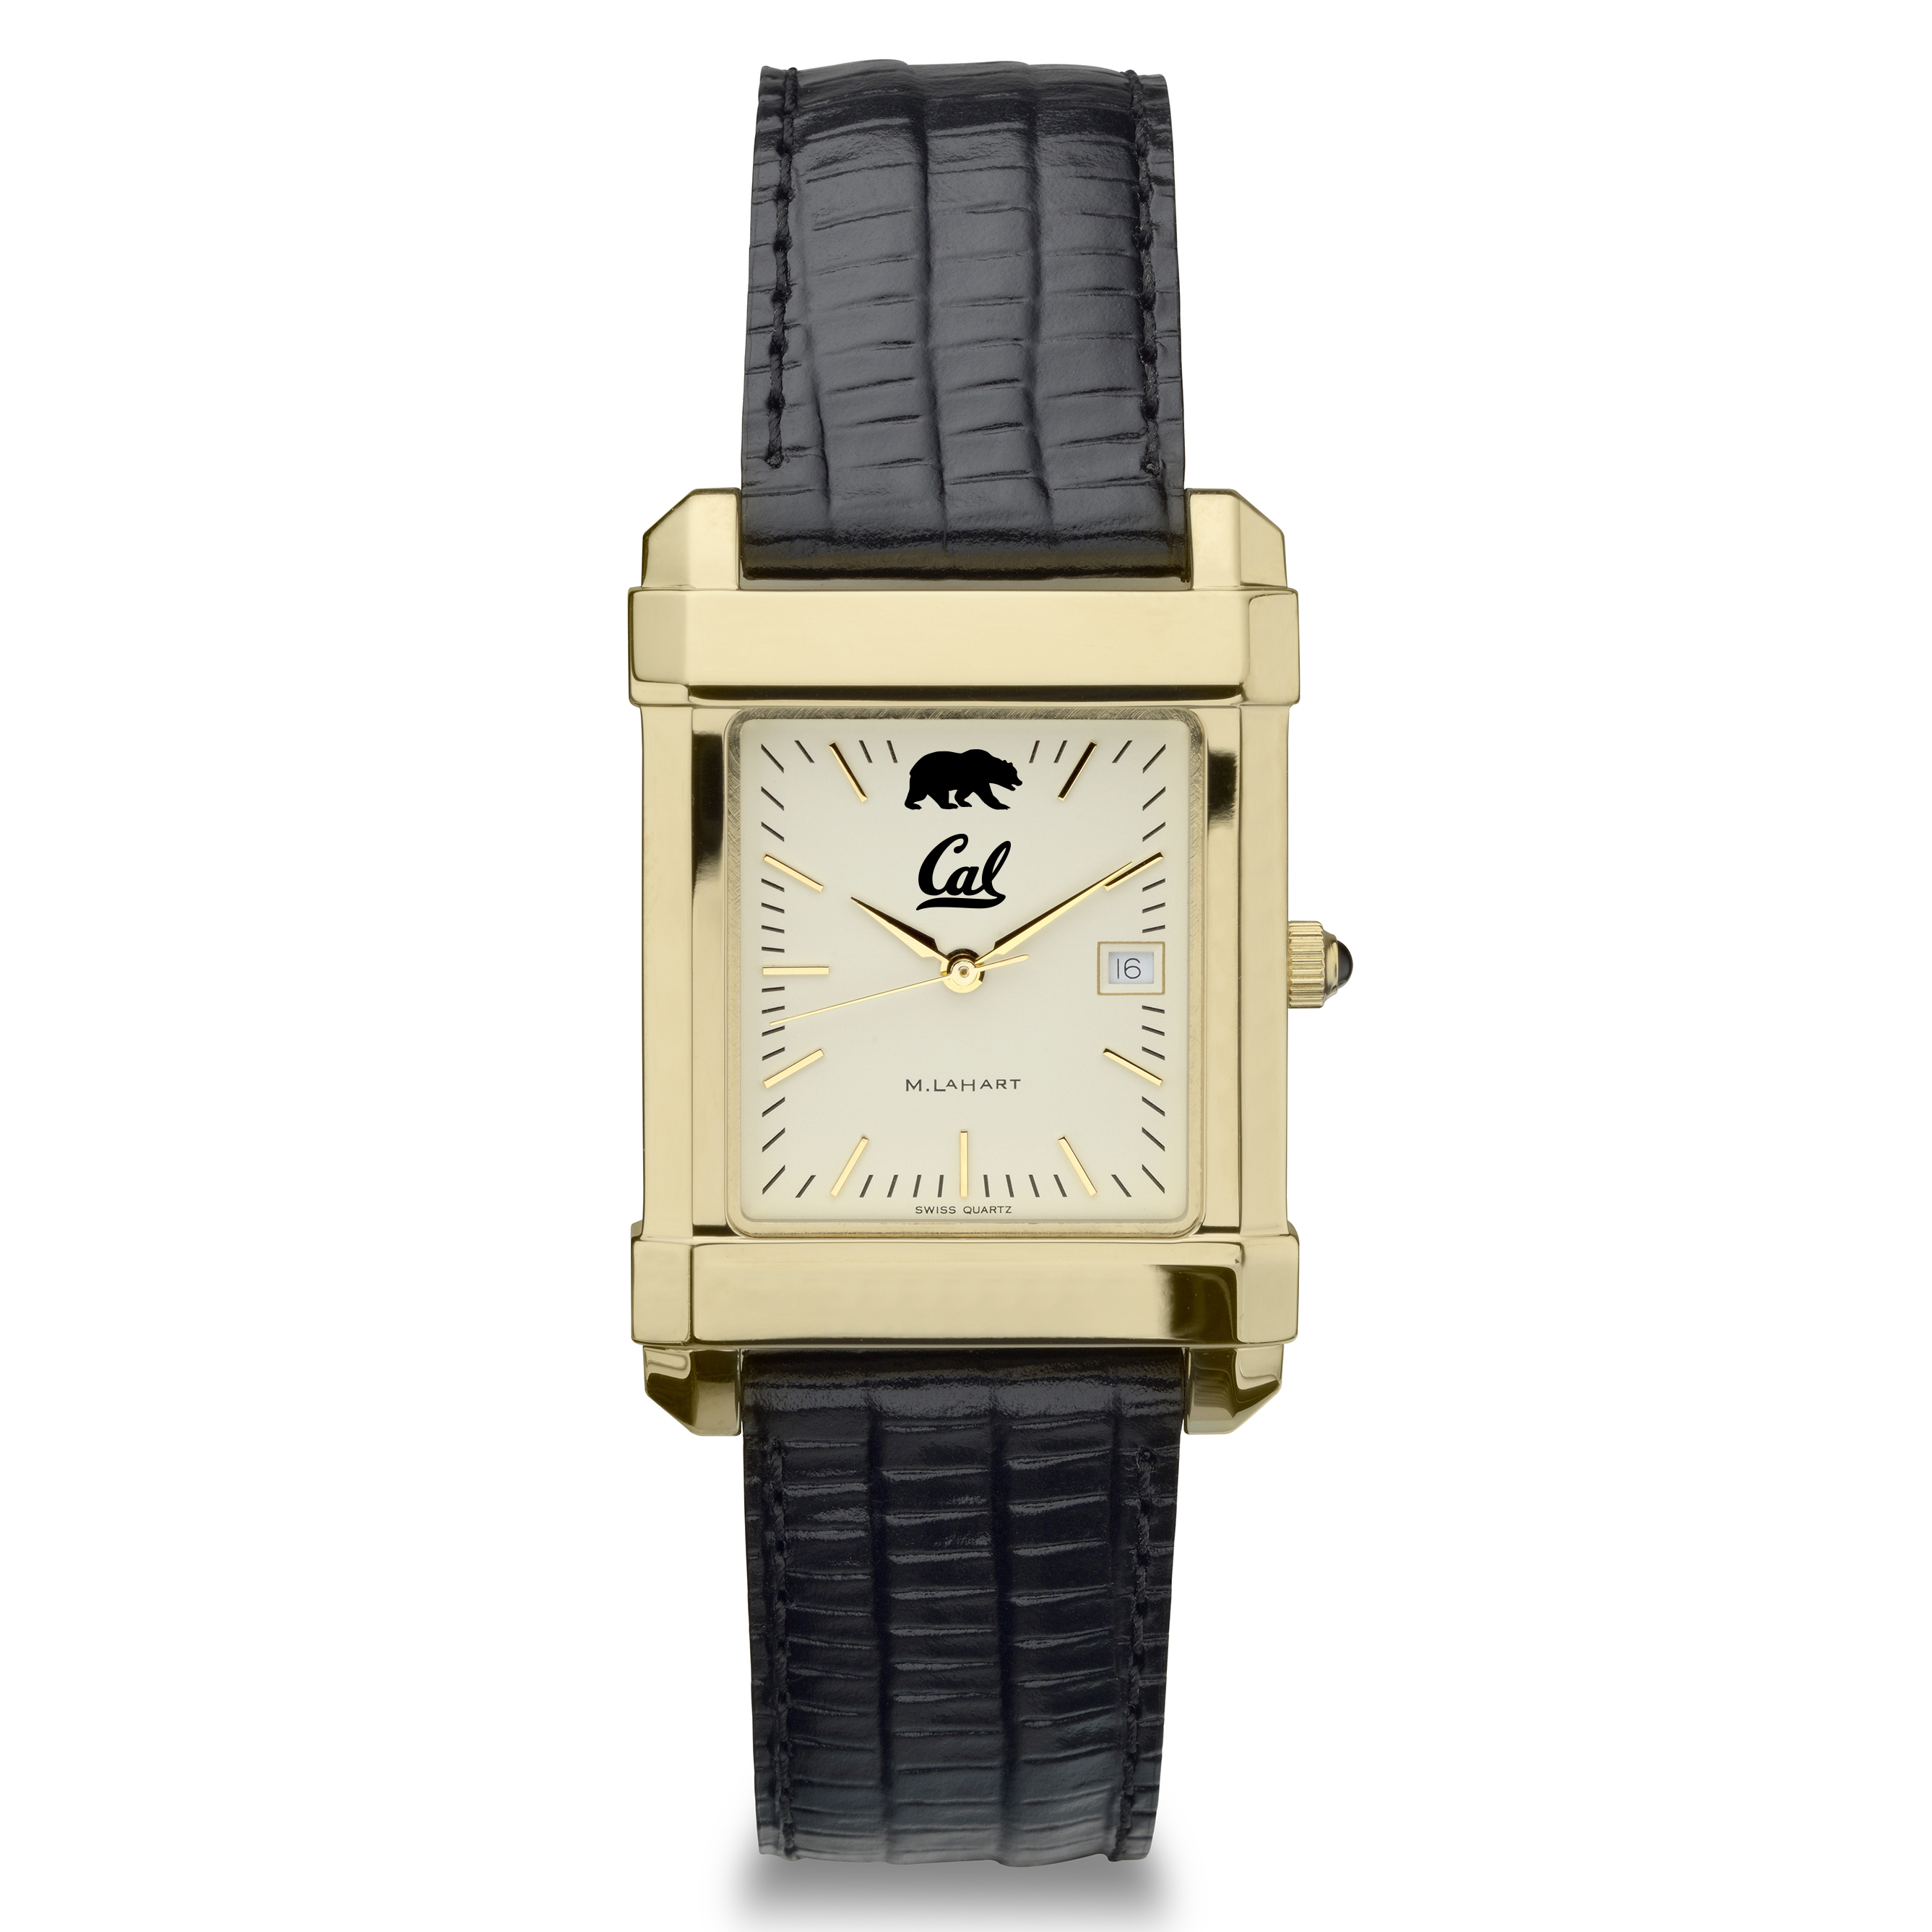 Berkeley Men's Gold Quad with Leather Strap